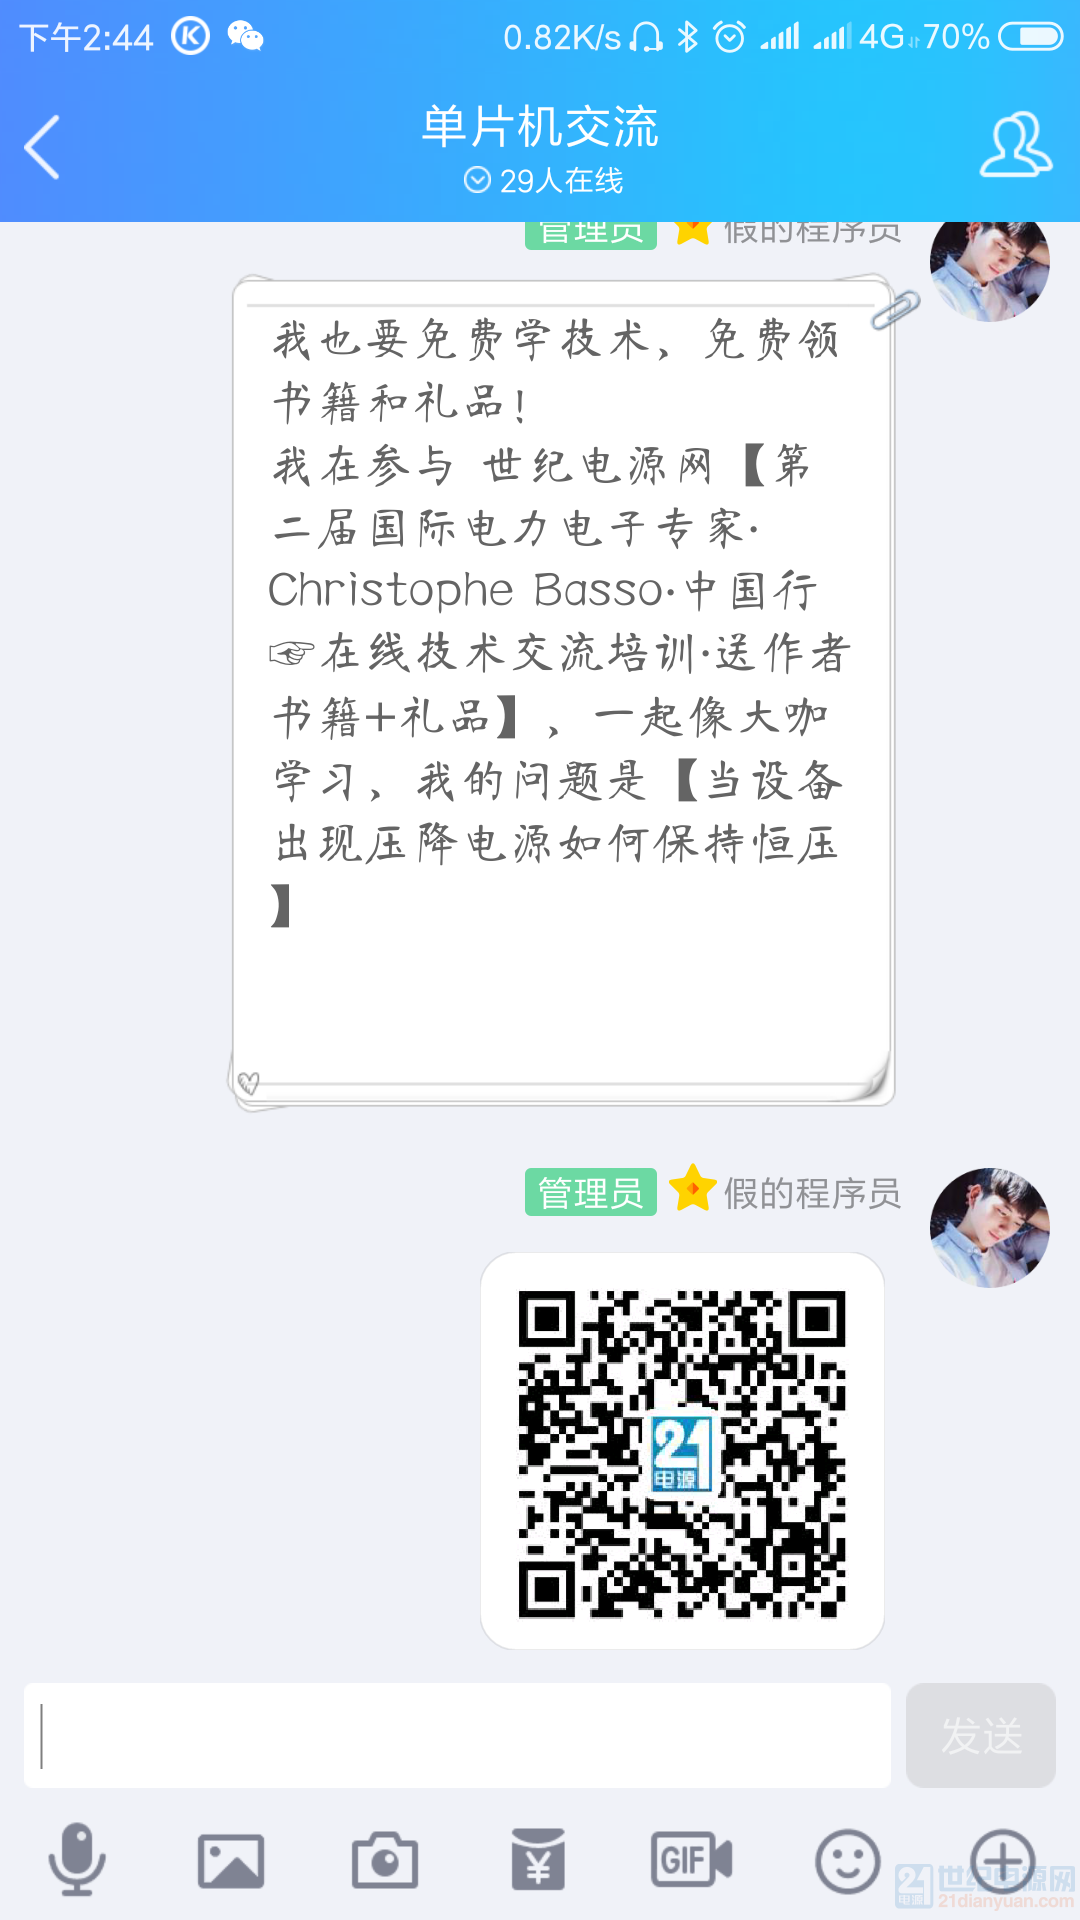 Screenshot_2018-10-12-14-44-59-564_com.tencent.mobileqq.png